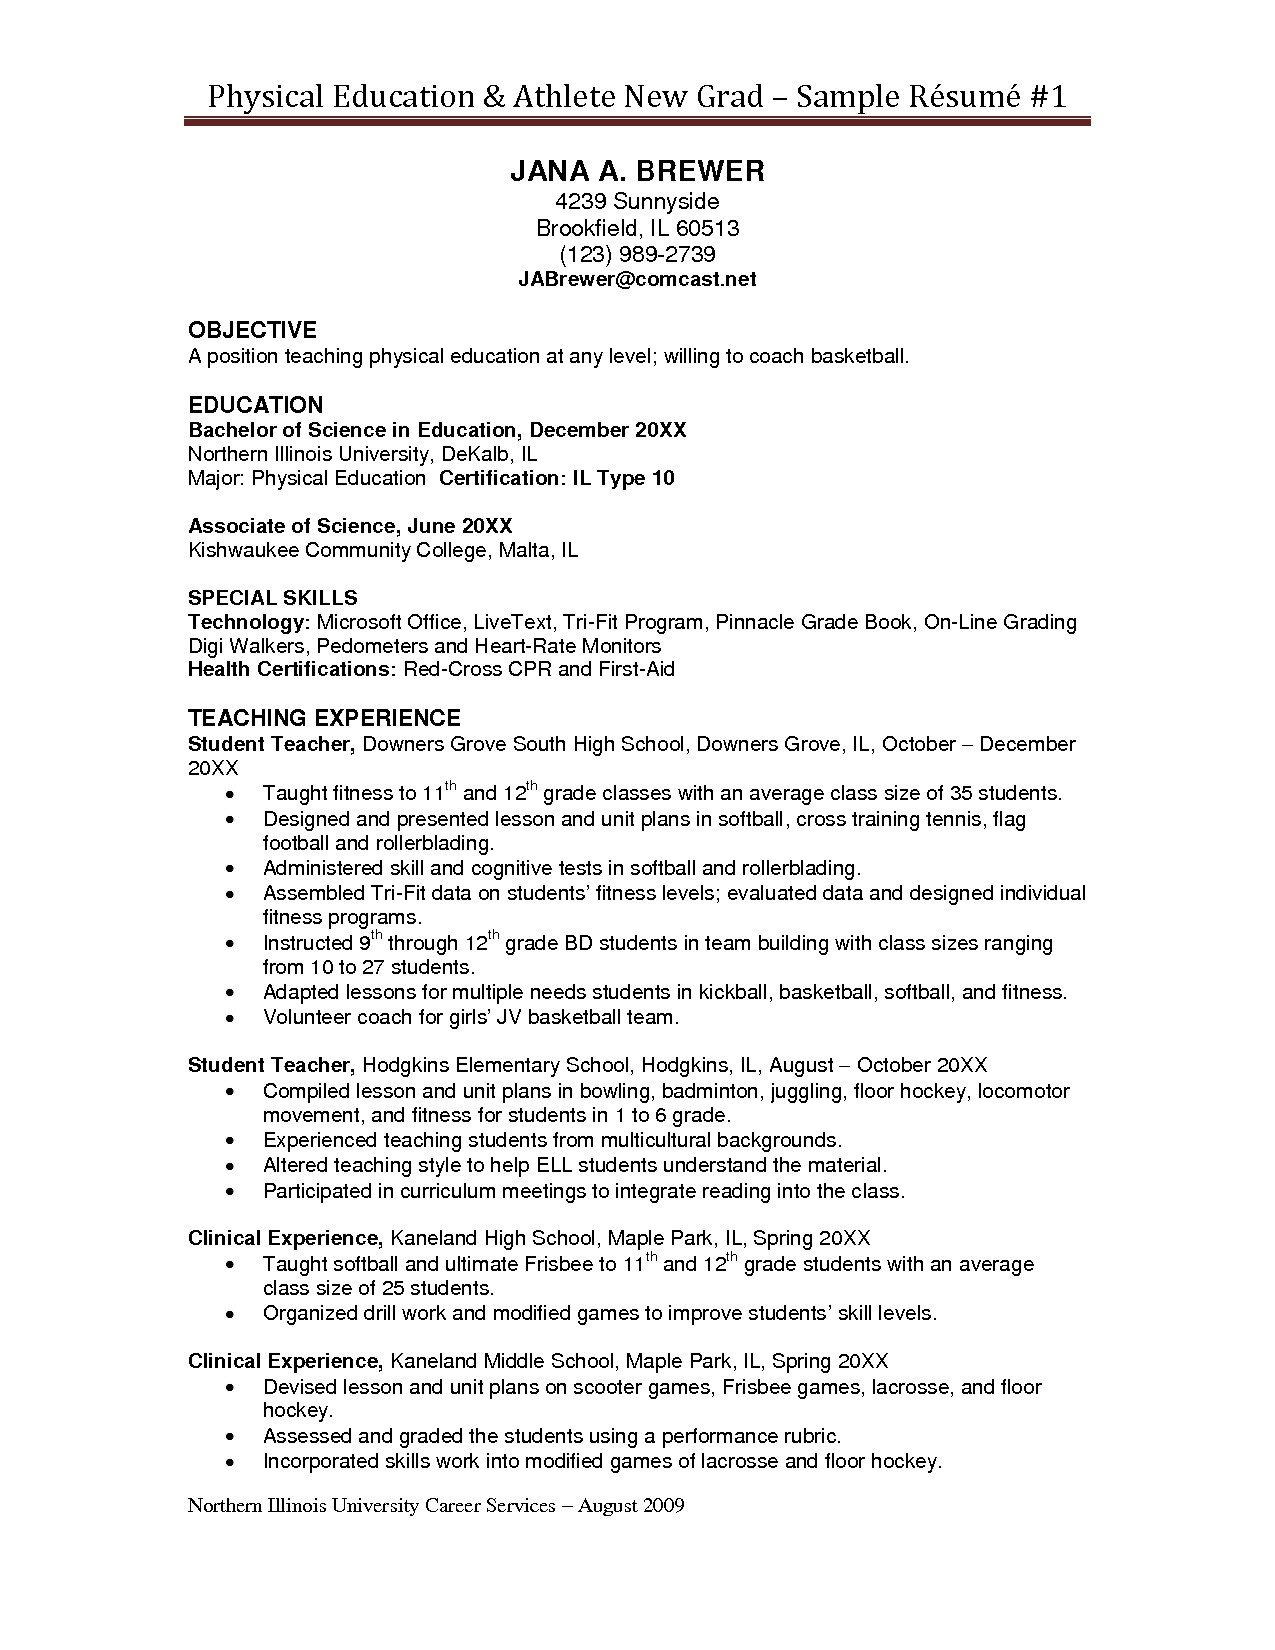 Hockey Resume Template - Hockey Coach Cover Letter Inspirationa Outstanding Hockey Resume